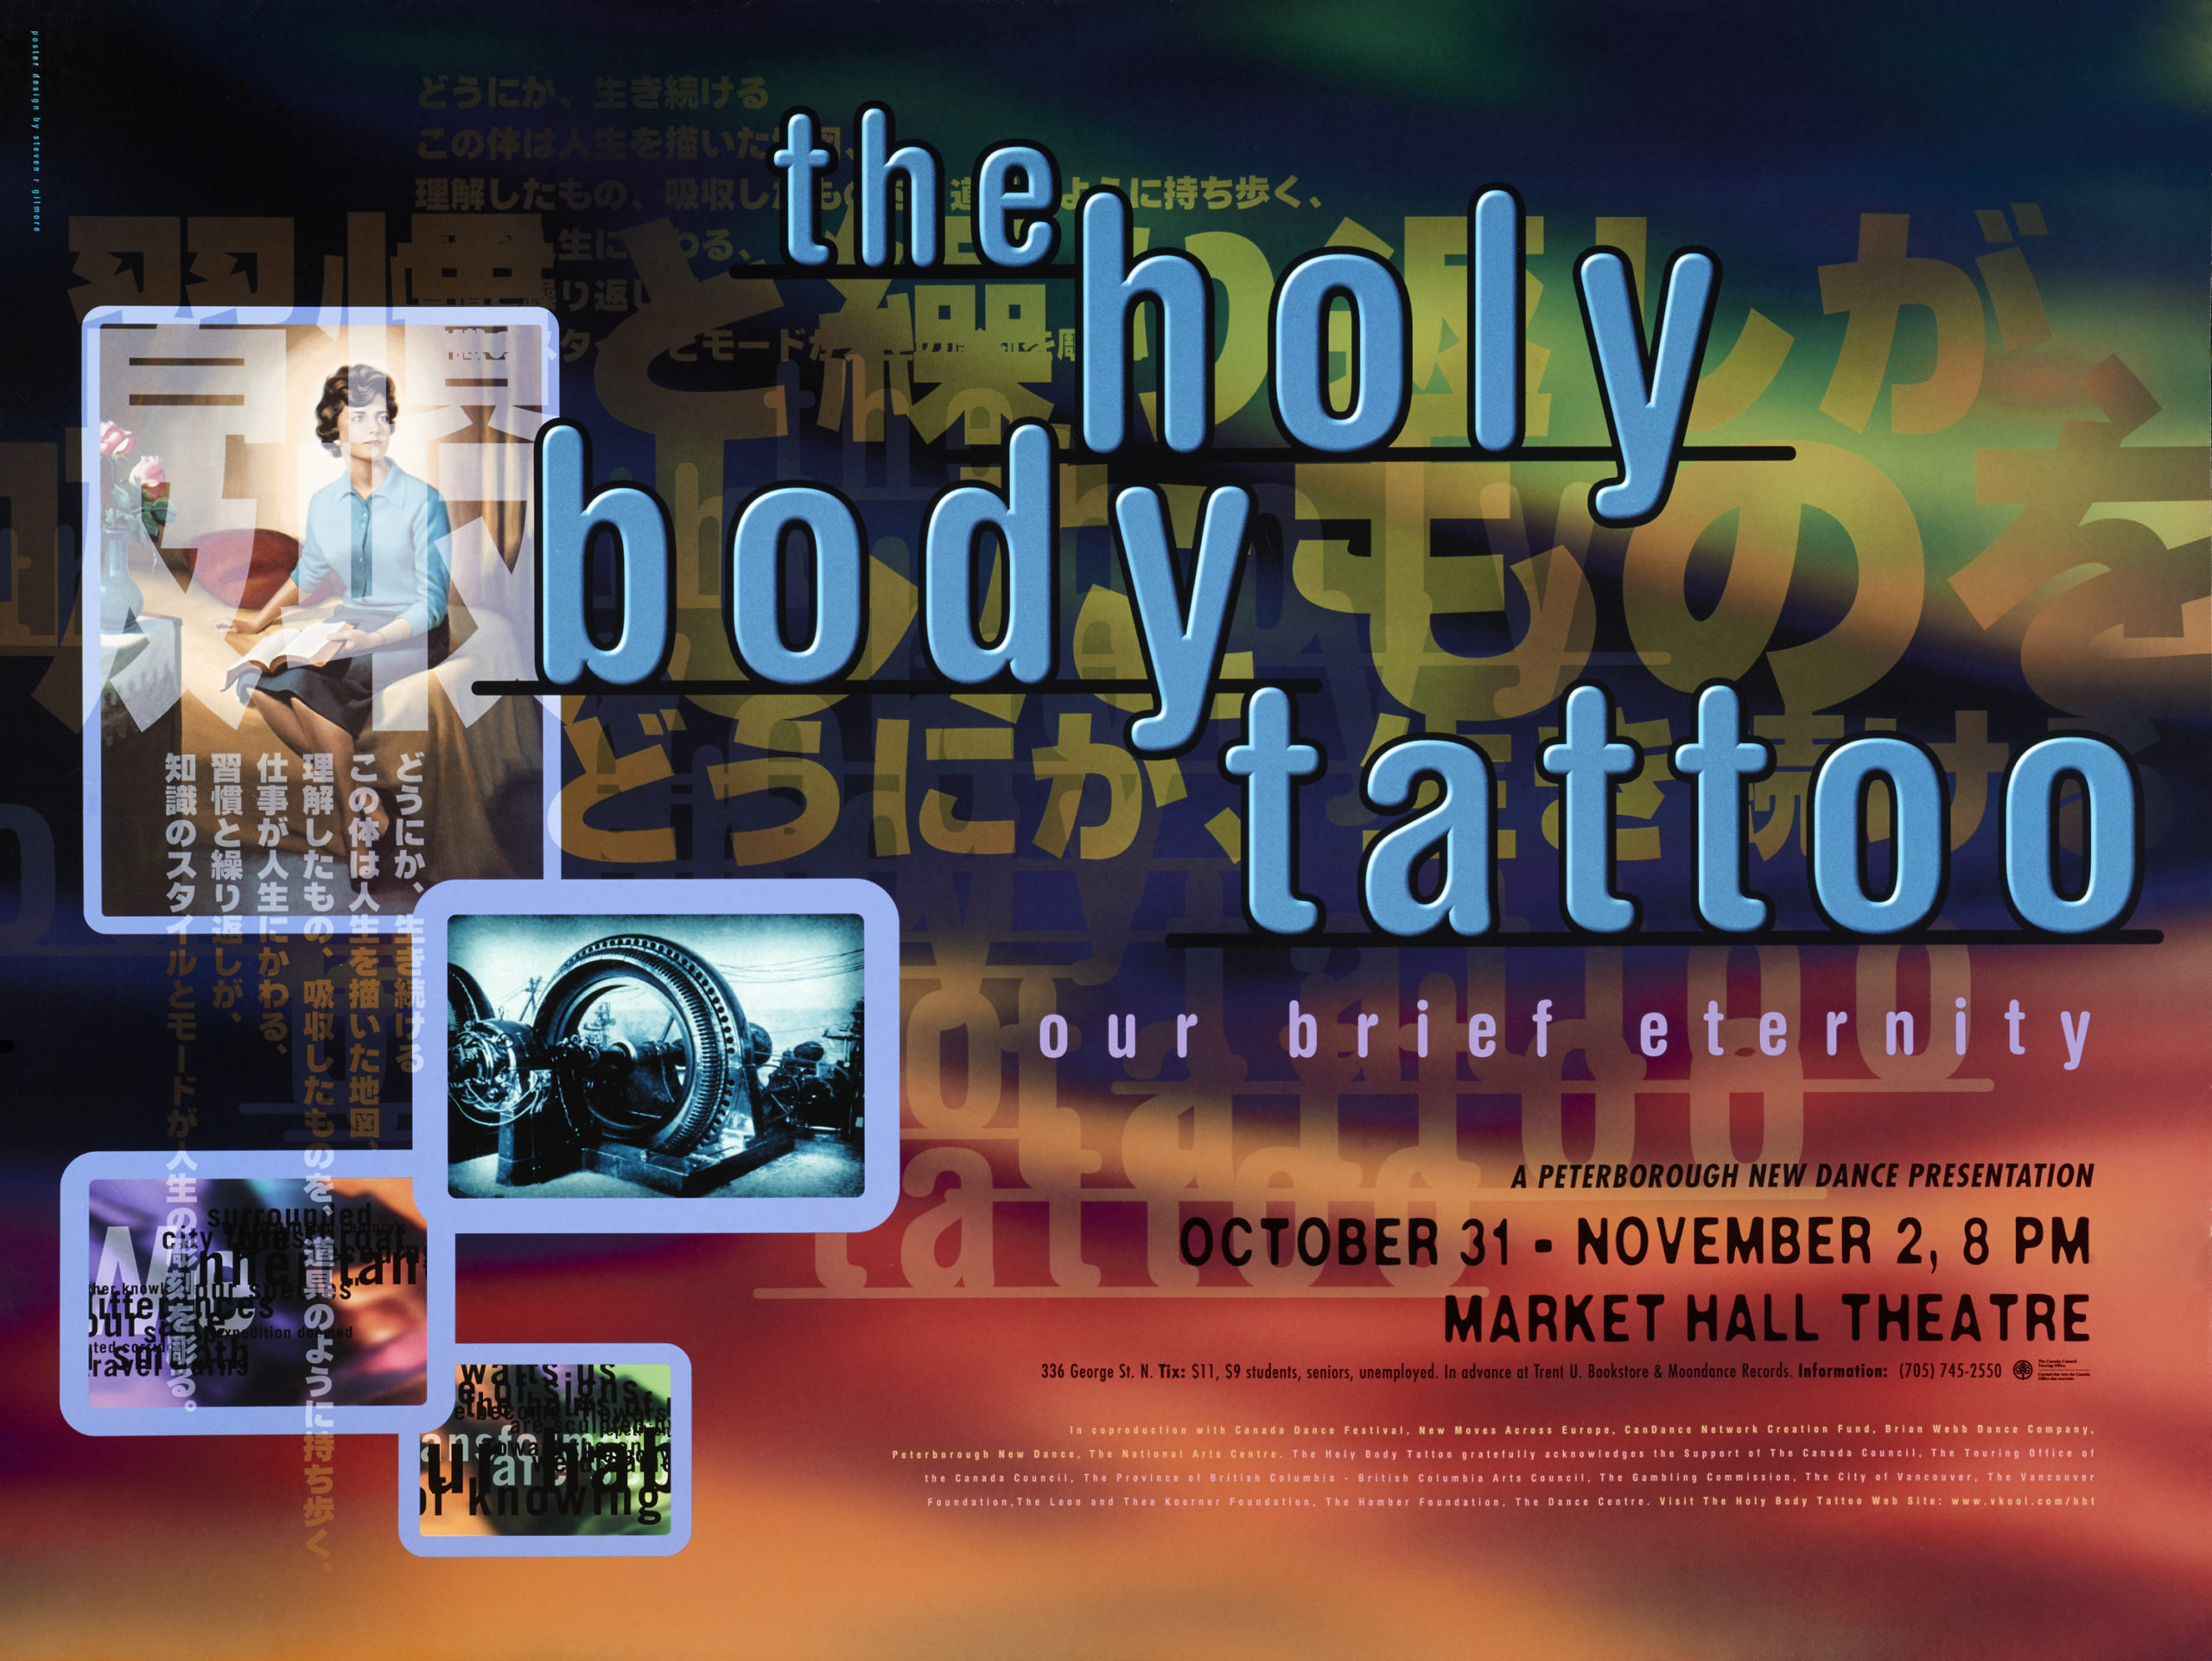 The Holy Body Tattoo – Our Brief Eternity Poster for The Holy Body Tattoo - Our Brief Eternity in the photo.